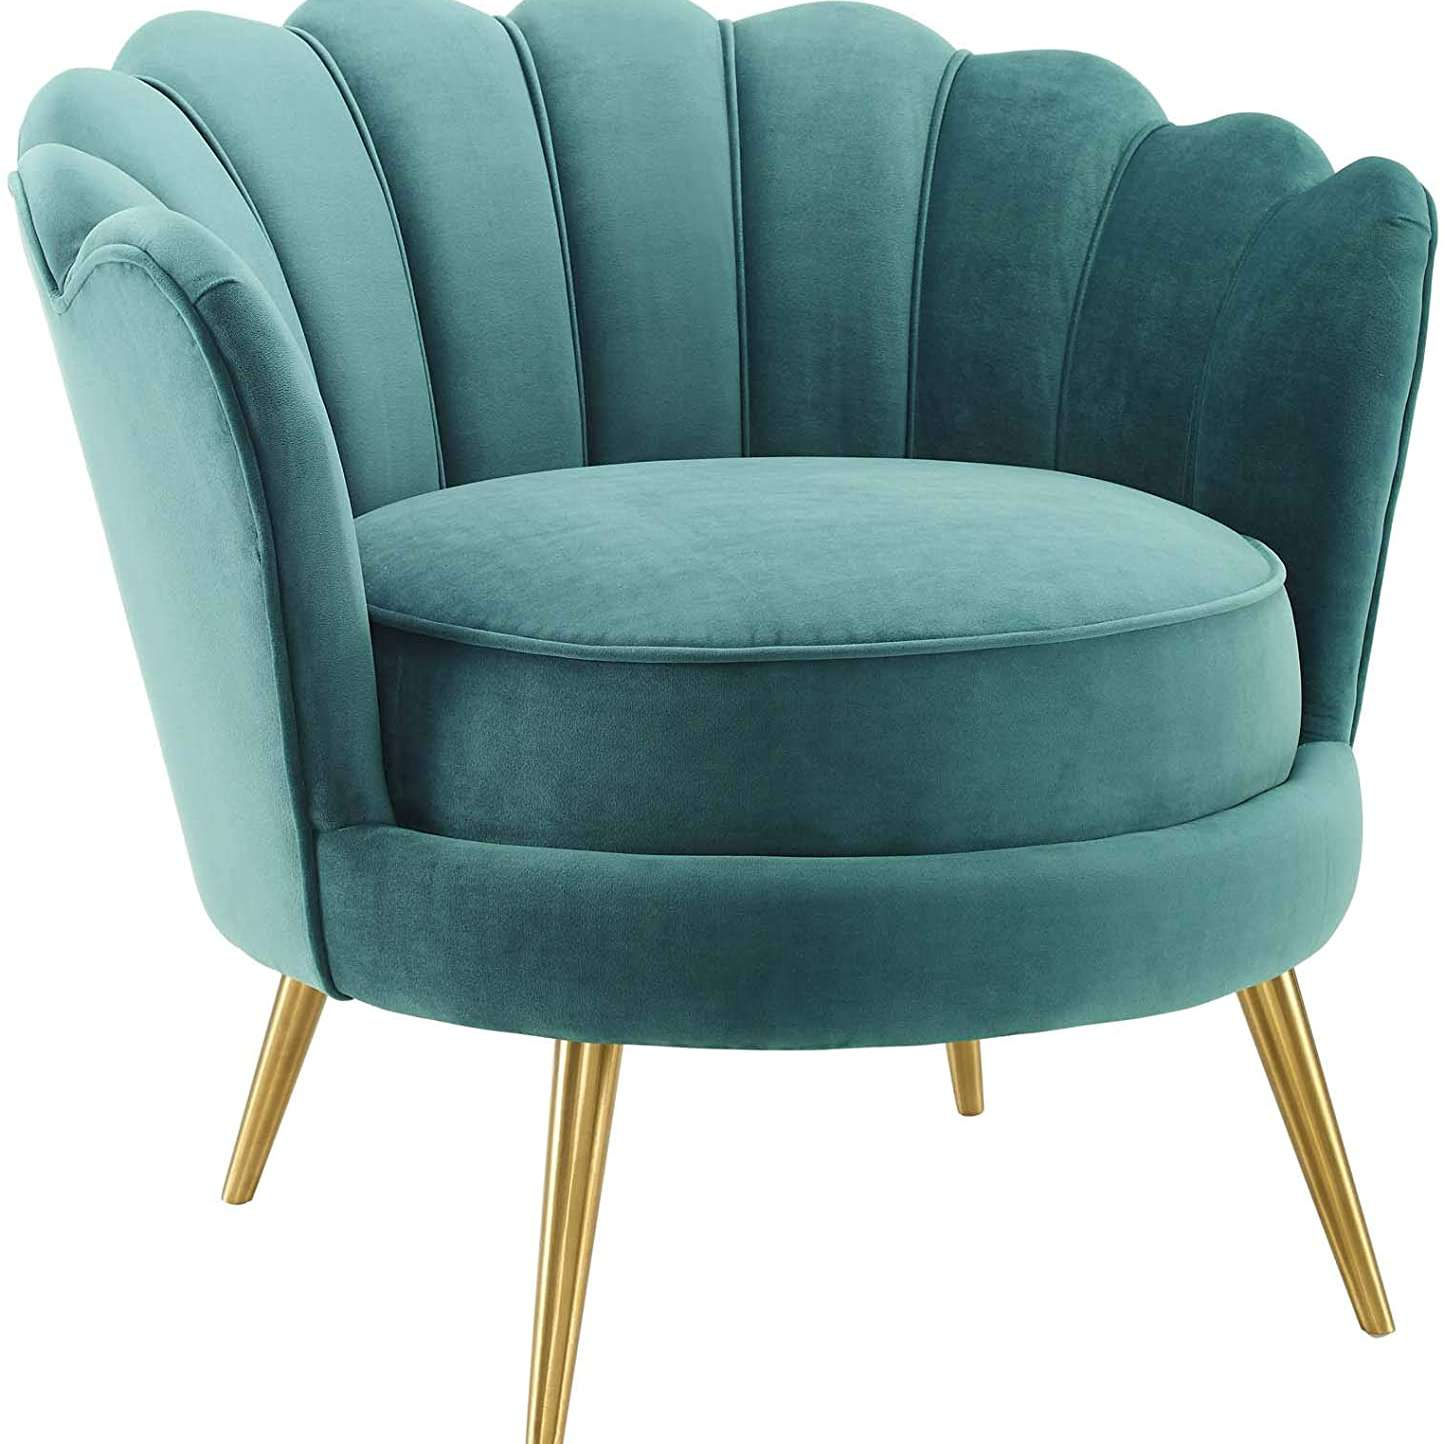 Turquoise scalloped chair.